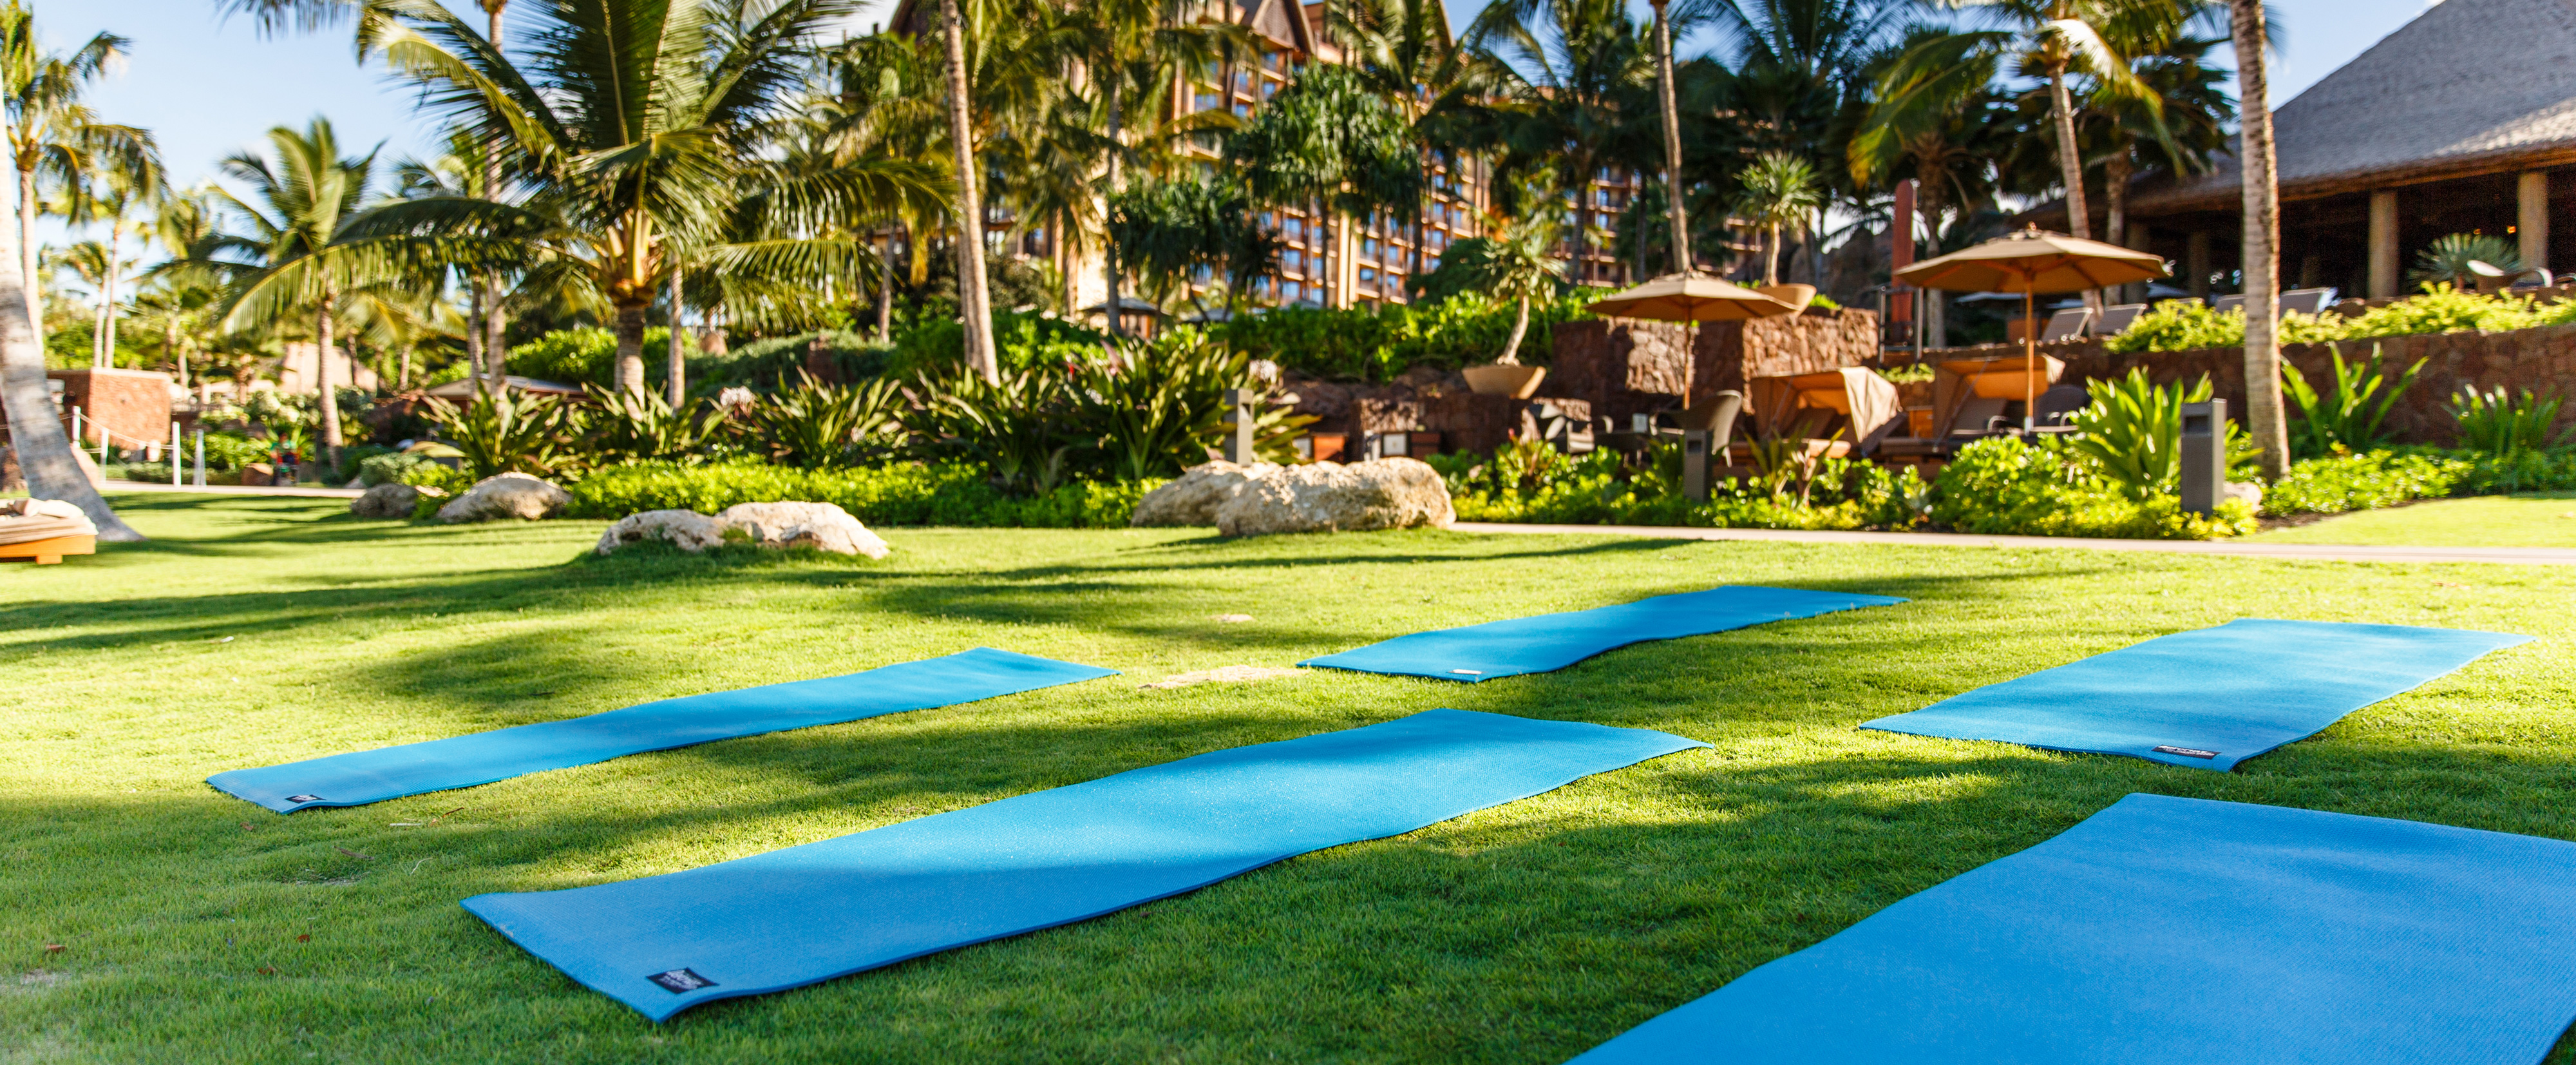 Several yoga mats spread out on a lawn bordered by palm trees